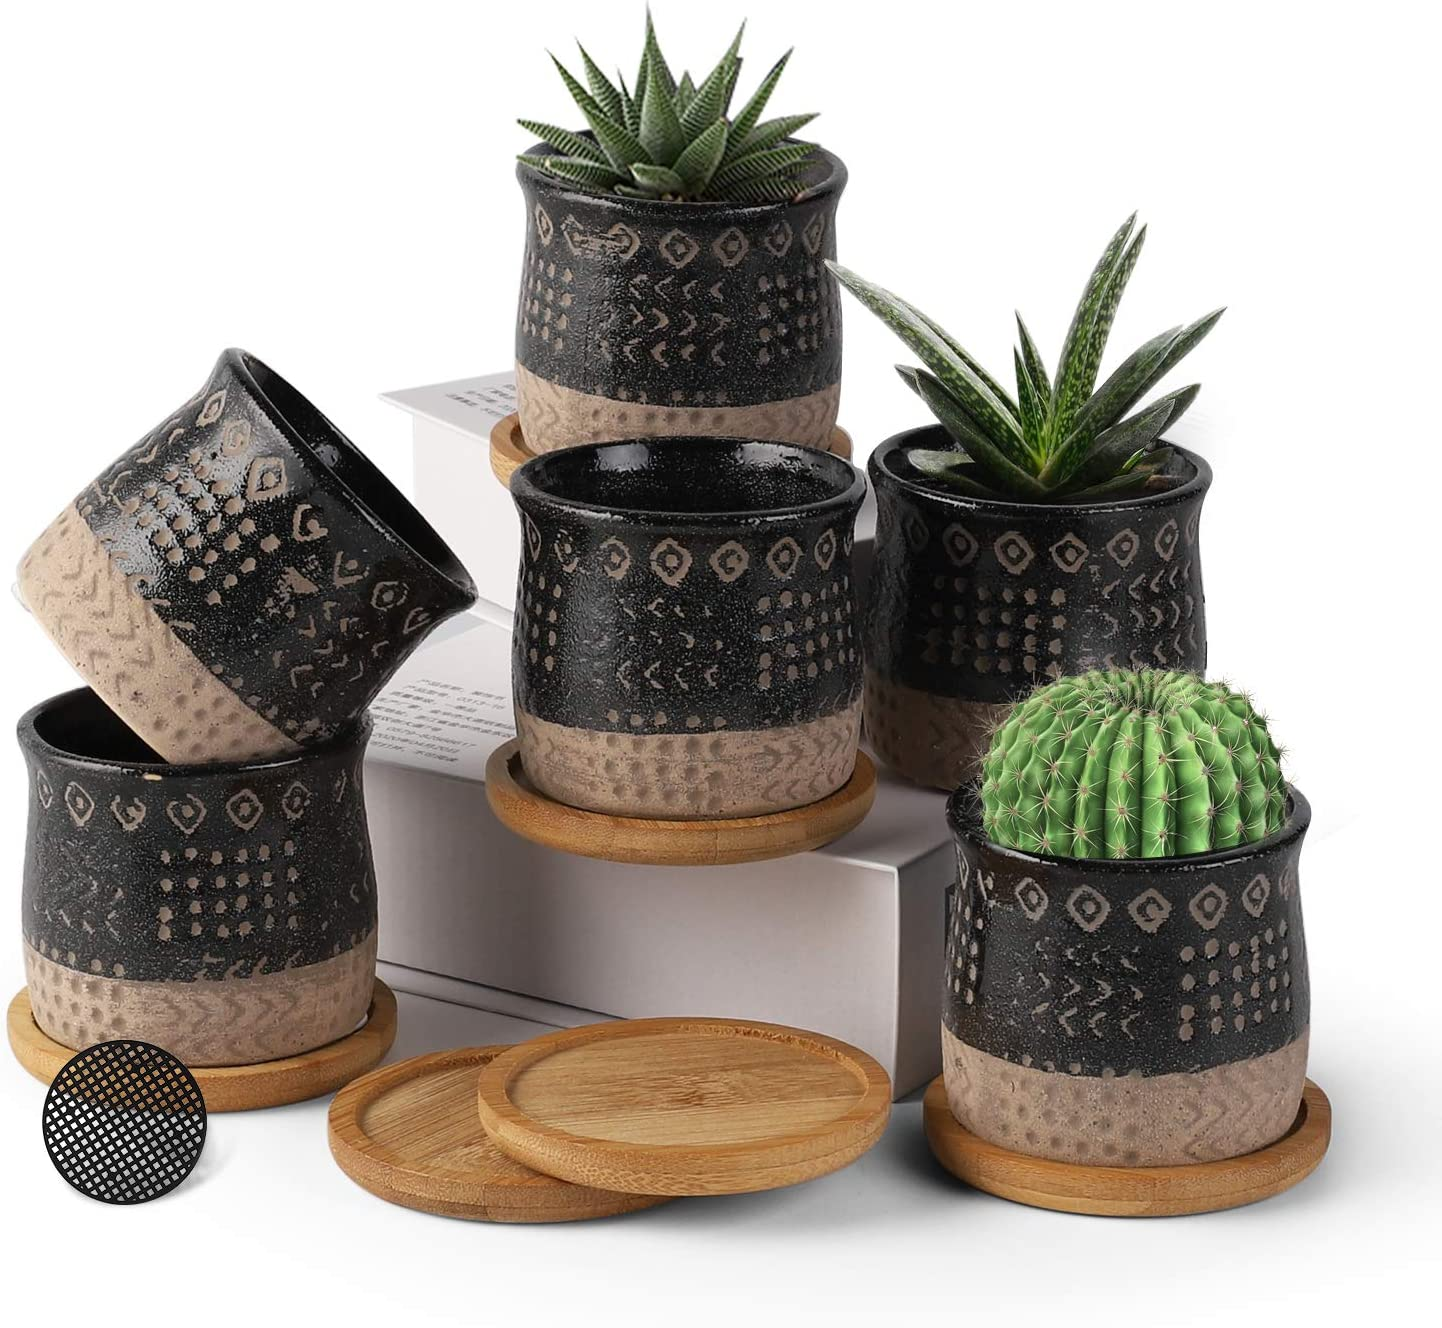 Small Succulent Plant Pots 6 Pack, 2.75 inch Mini Ceramic Planter with Bamboo Tray and Removable Drainage Hole,Retro Decor for Garden, Balcony, Office - Plants Not Included